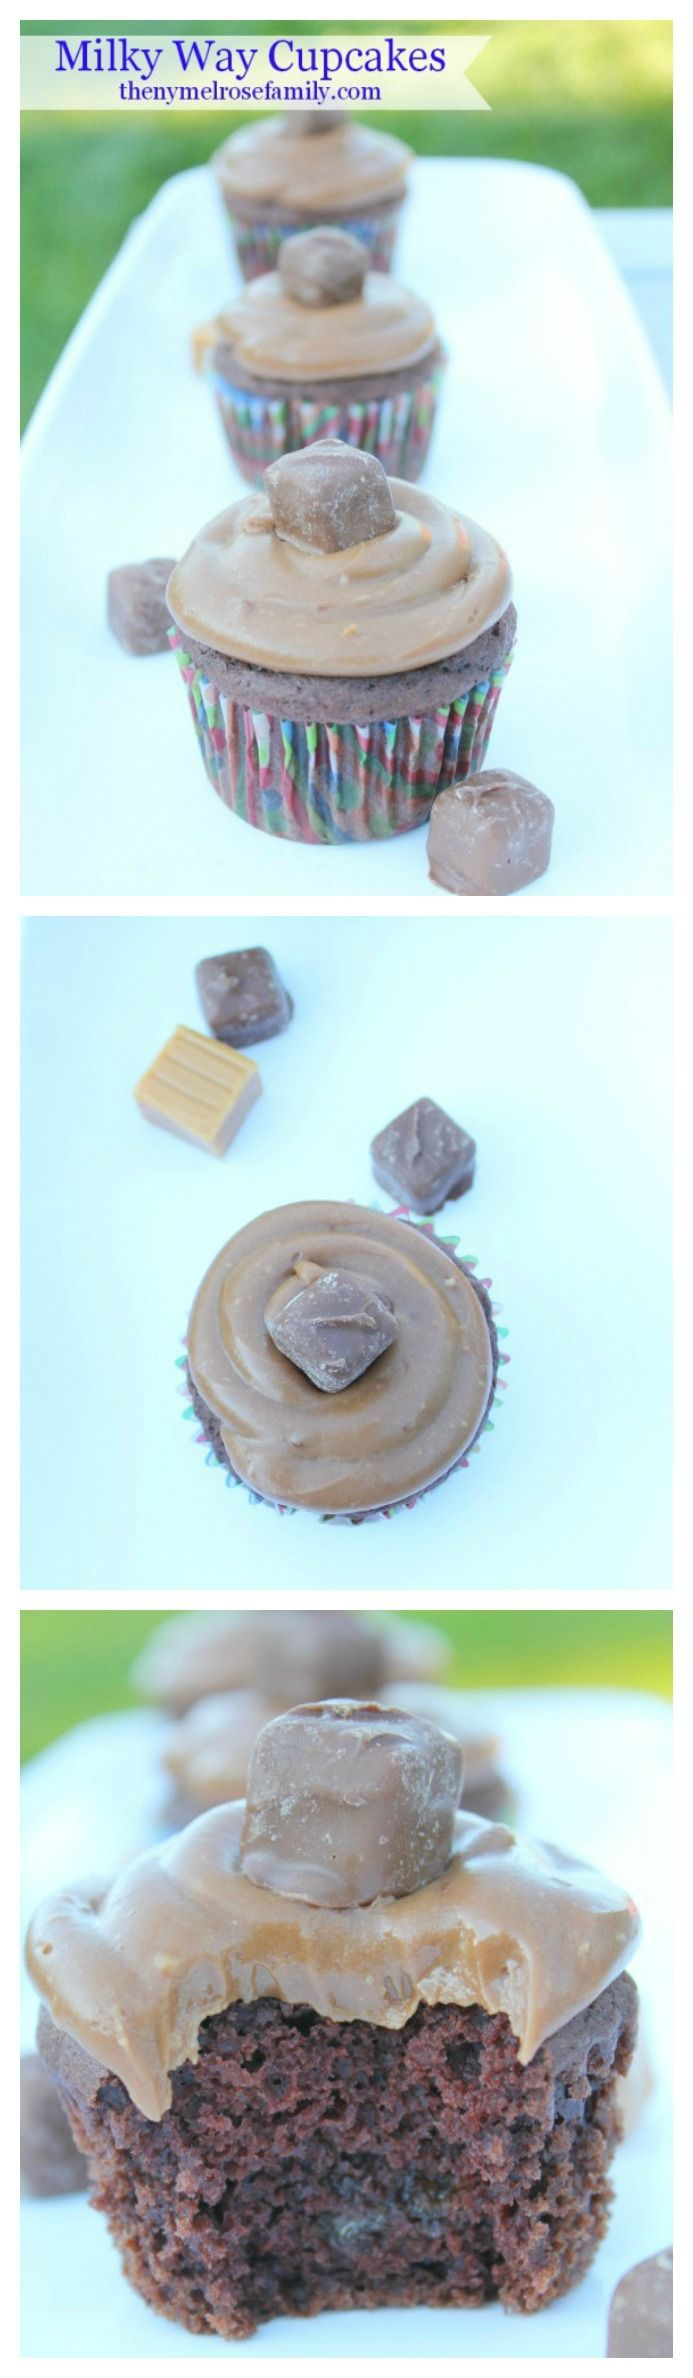 Milky Way Cupcakes made with milky way frosting!!! www ...